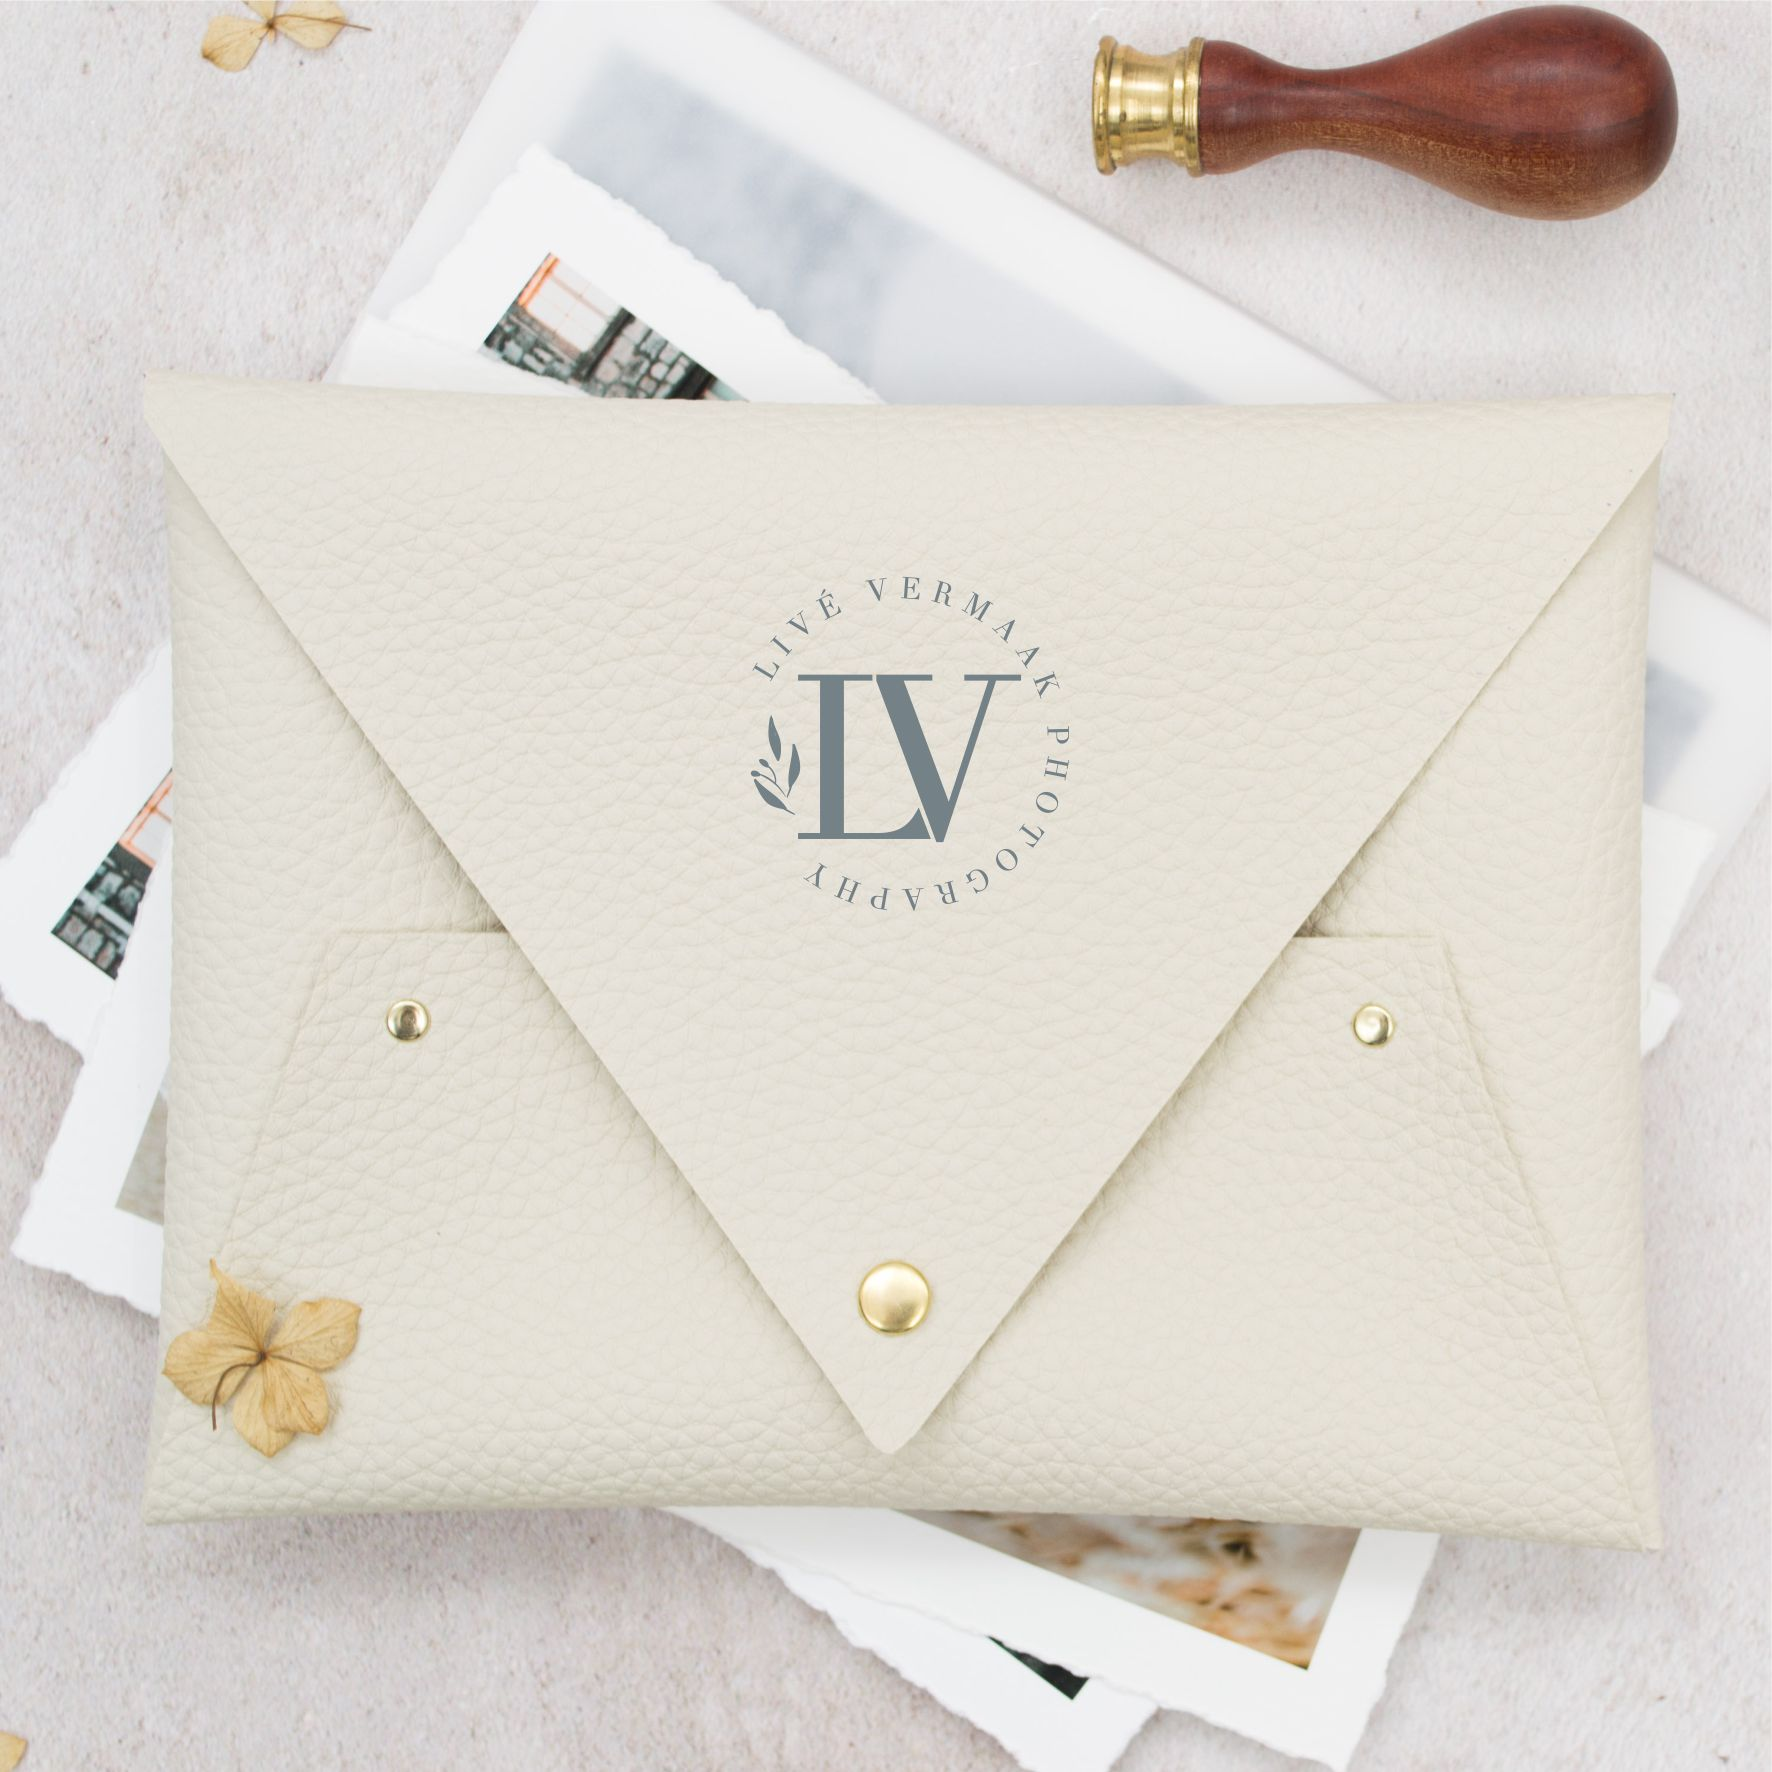 Molly_And_Tom_Print_Pouch_Cream_Fine_art_Photography_Wedding_Photography_Packaging.jpg